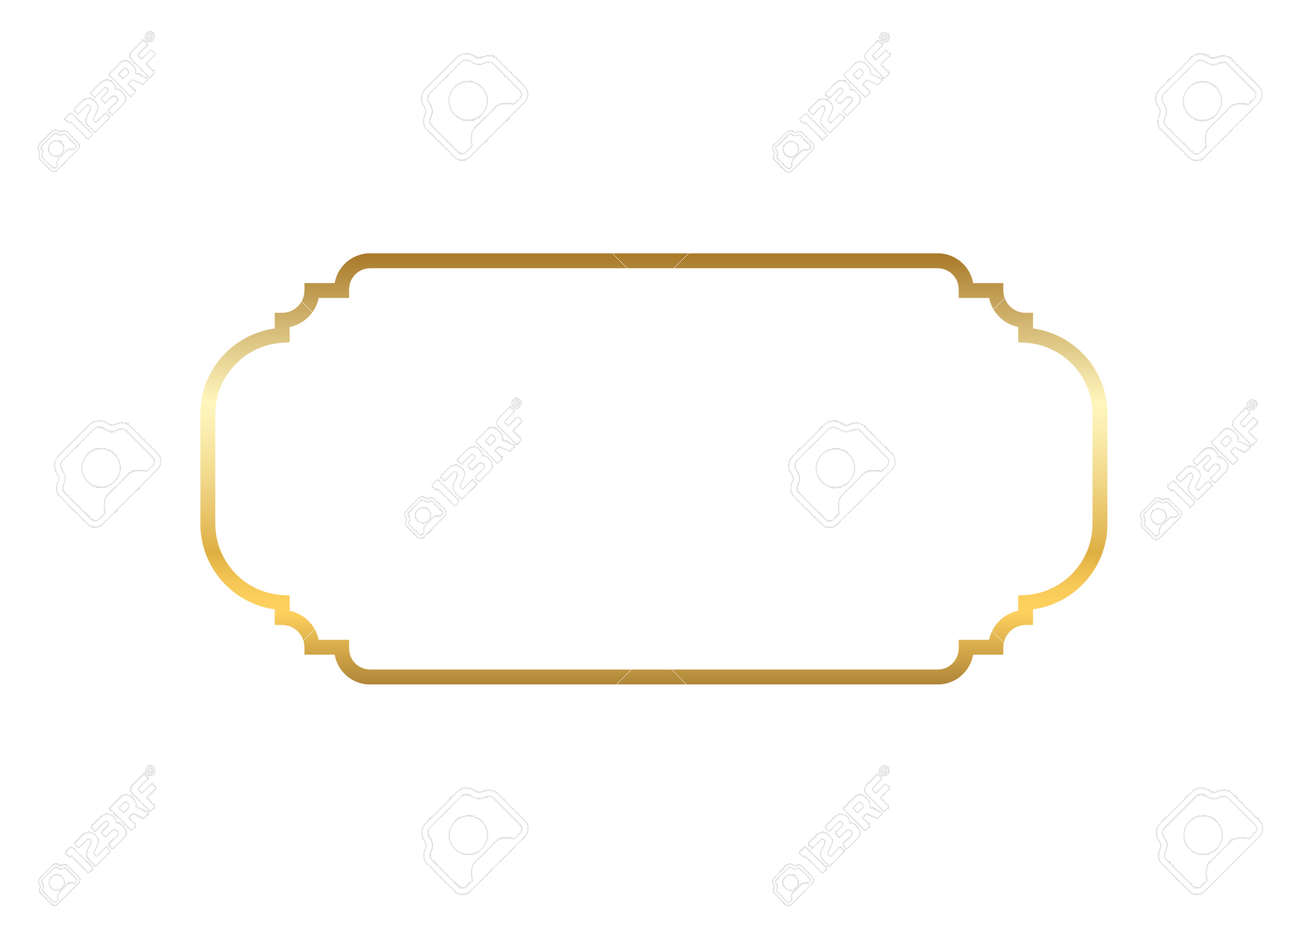 8832f7a7a7d8 Gold frame. Beautiful simple golden design. Vintage style decorative border  isolated white background.